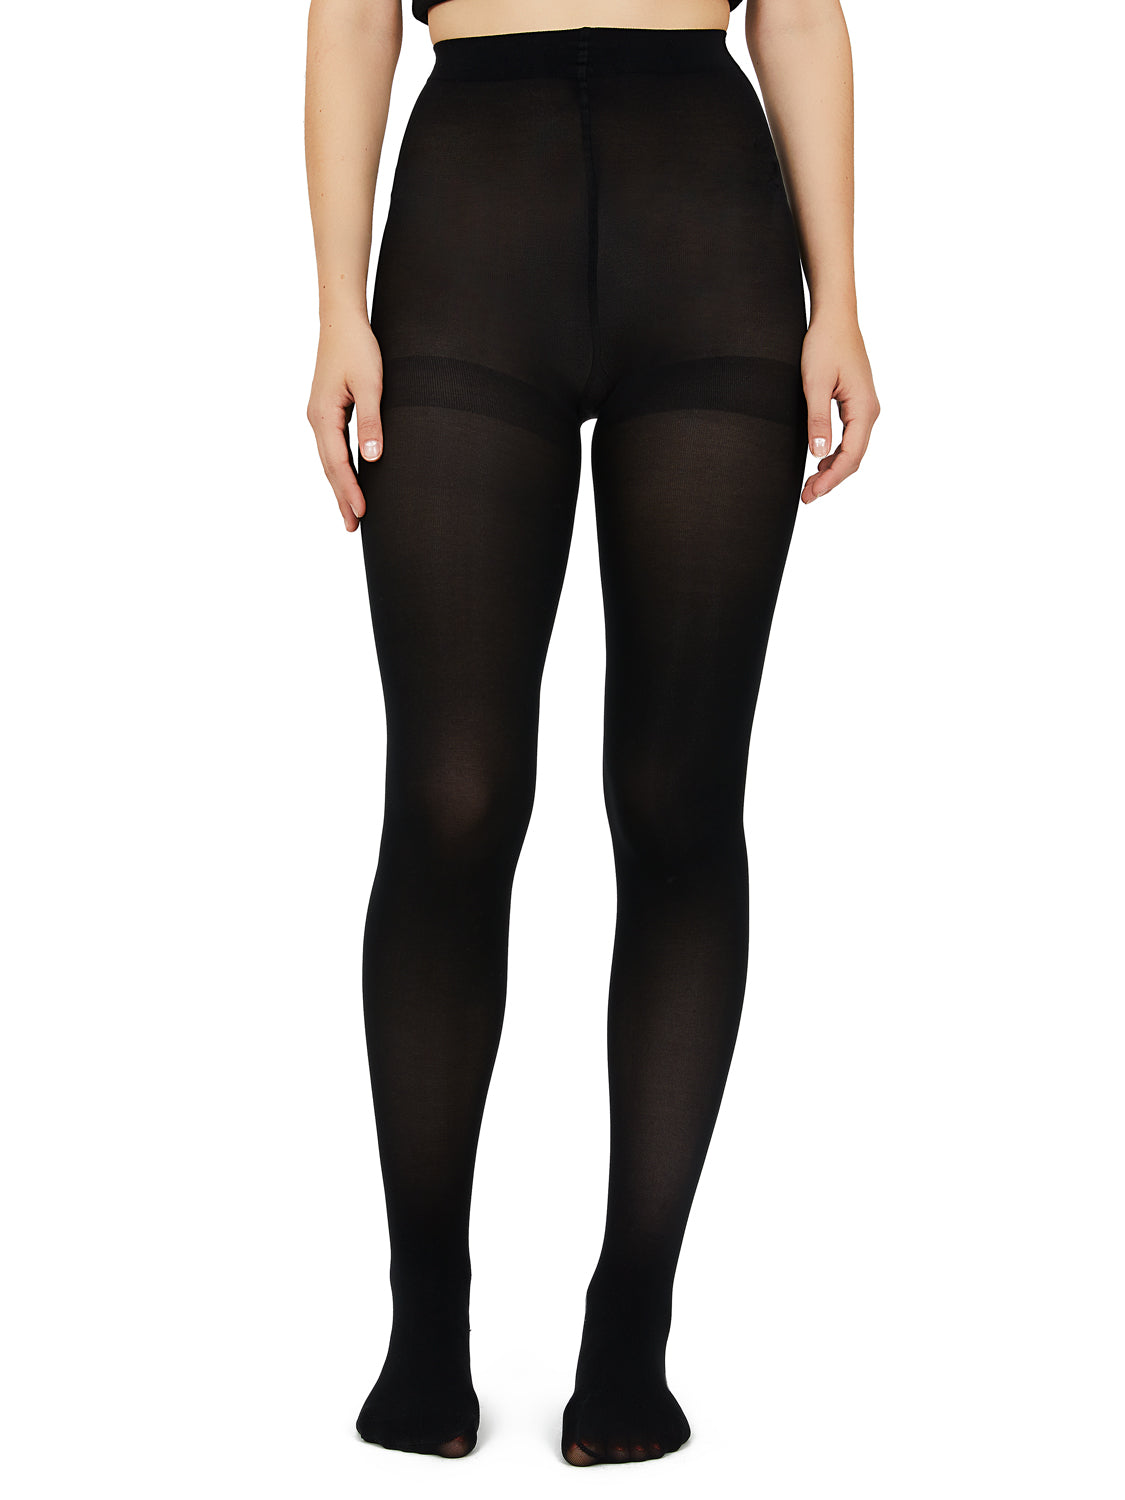 Microfiber Knit Tights